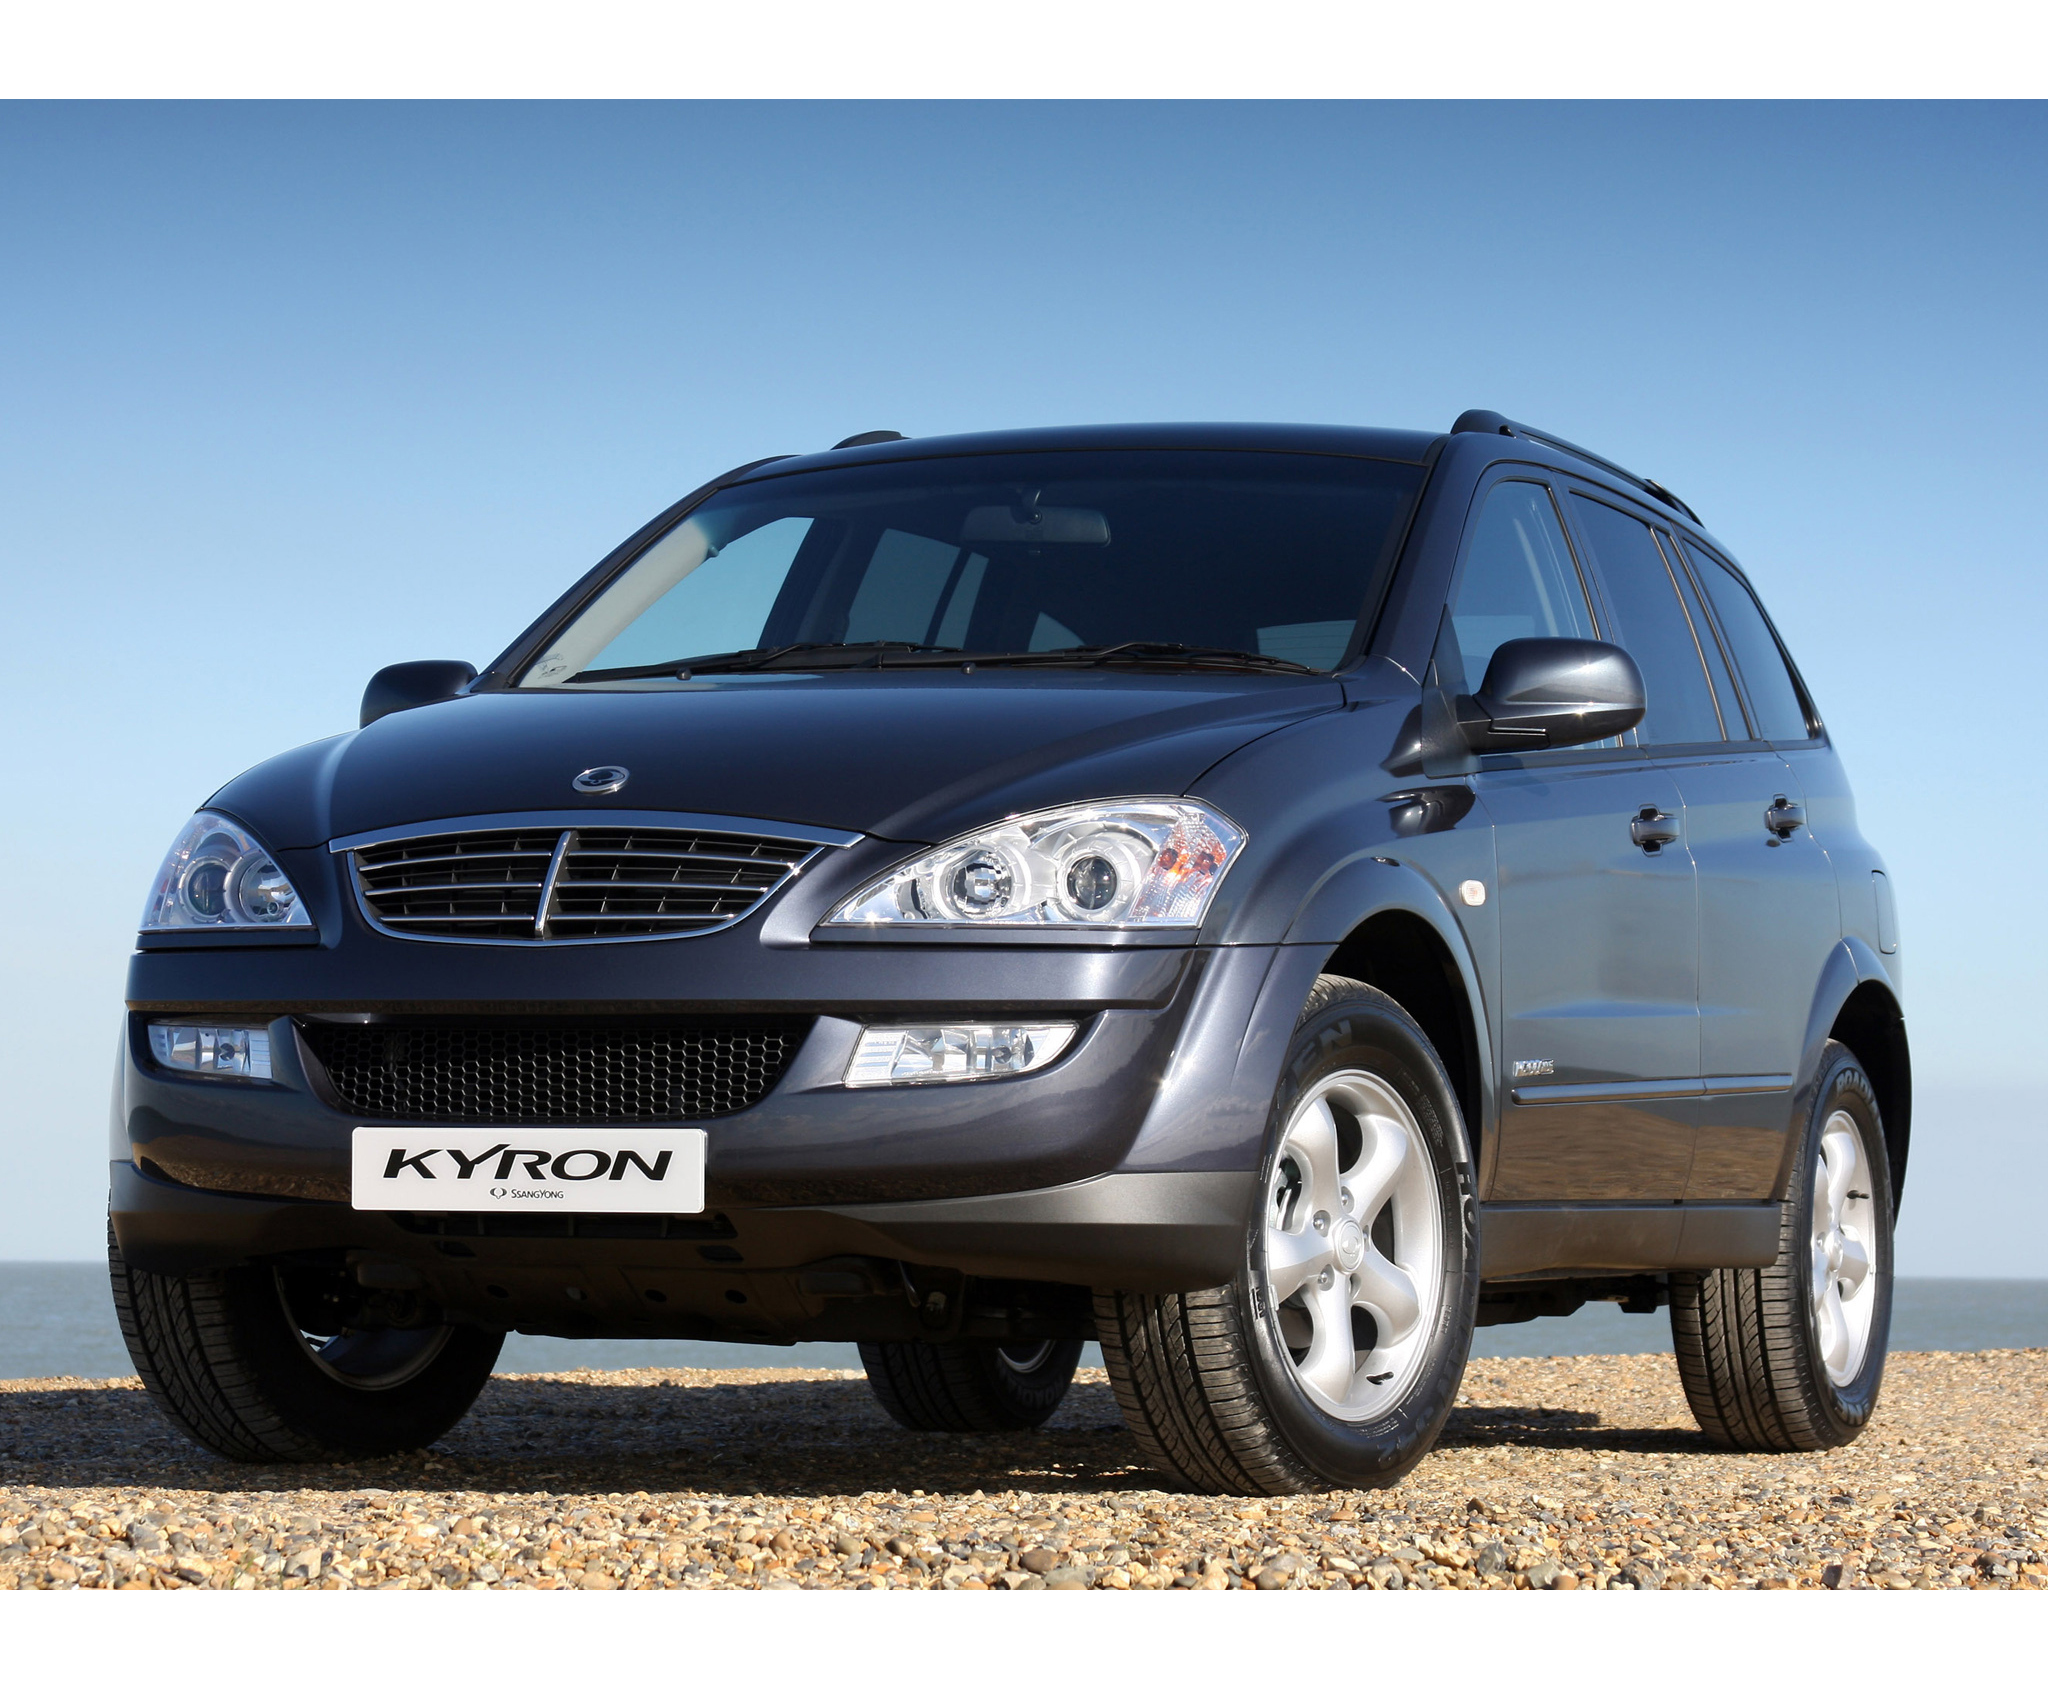 SsangYong Kyron 2.3 2013 photo - 9